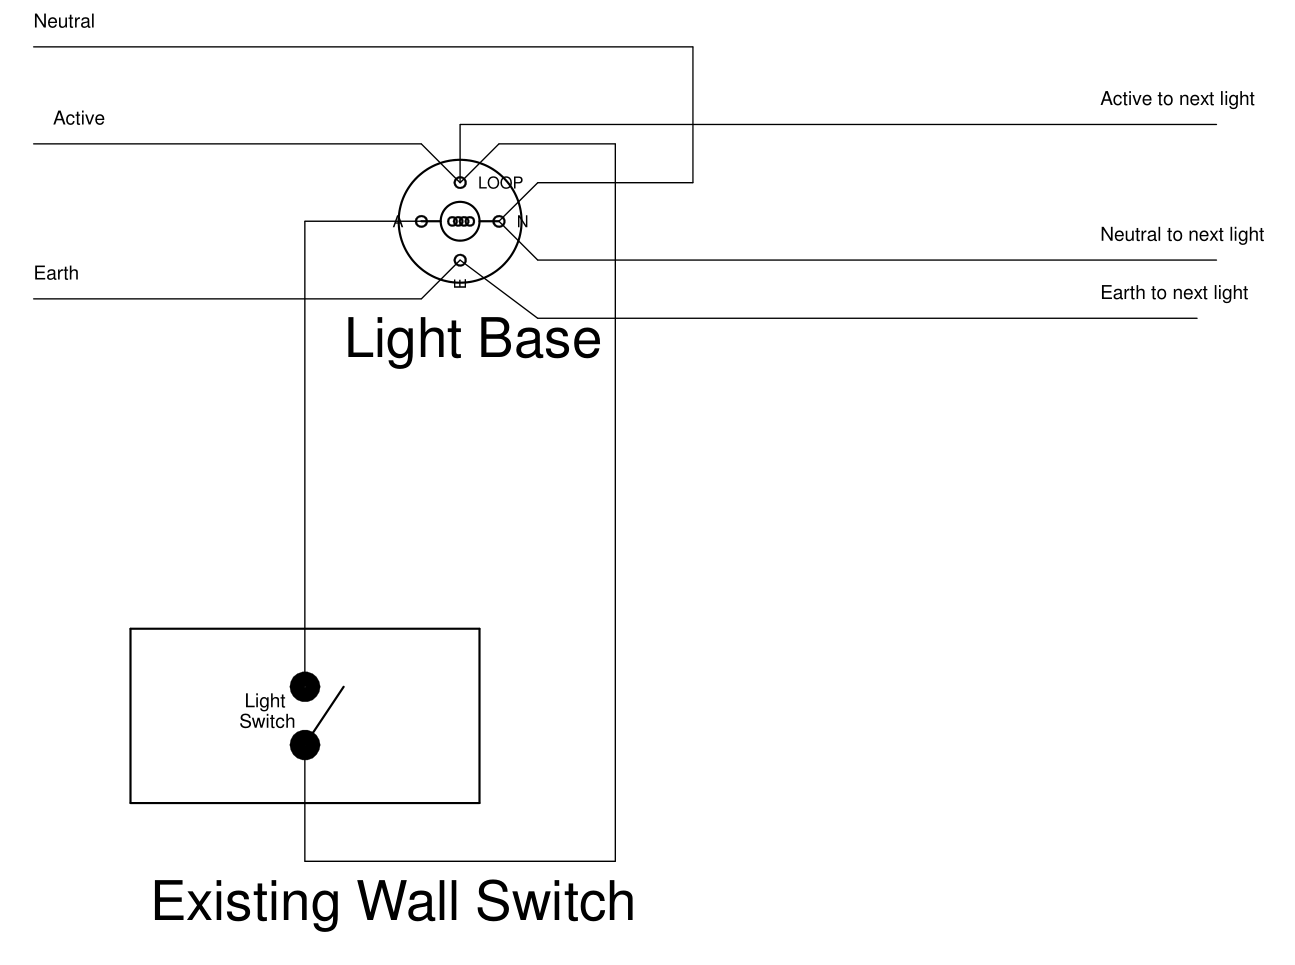 Retrofit House Lights With Wifi Keep Existing Switches Controlled Household Wiring Light Switch Active Neutral And Earth Wires Are Often Looped From Base To For Each The Is Down Wall Back